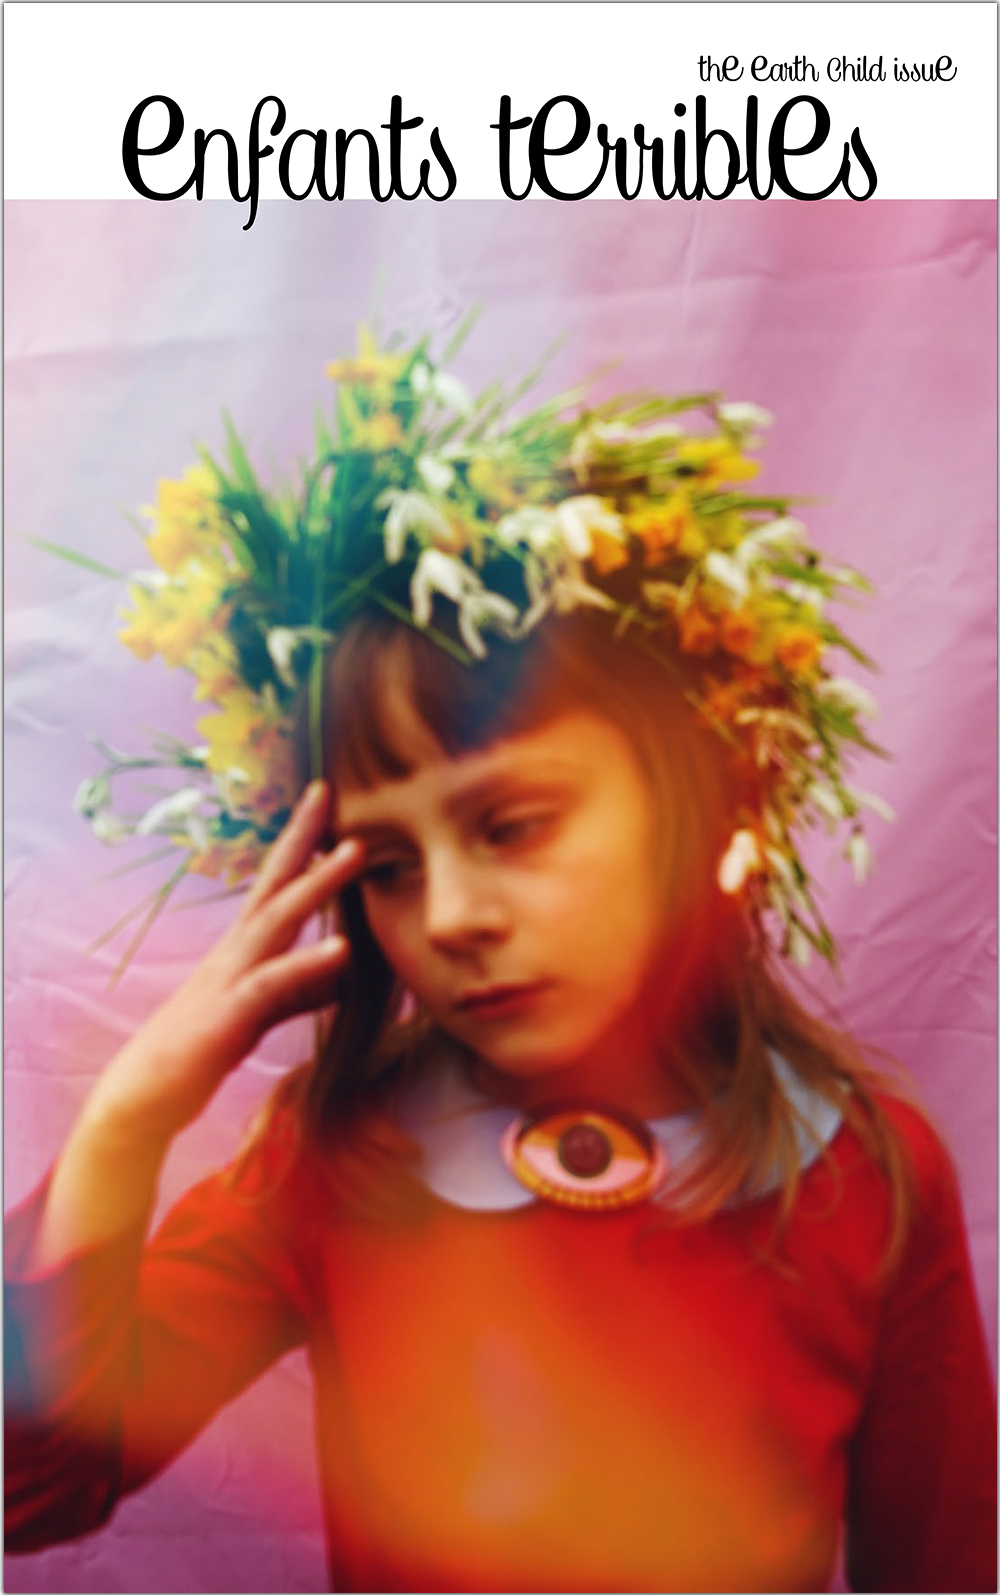 the Earth Child issue cover.jpg